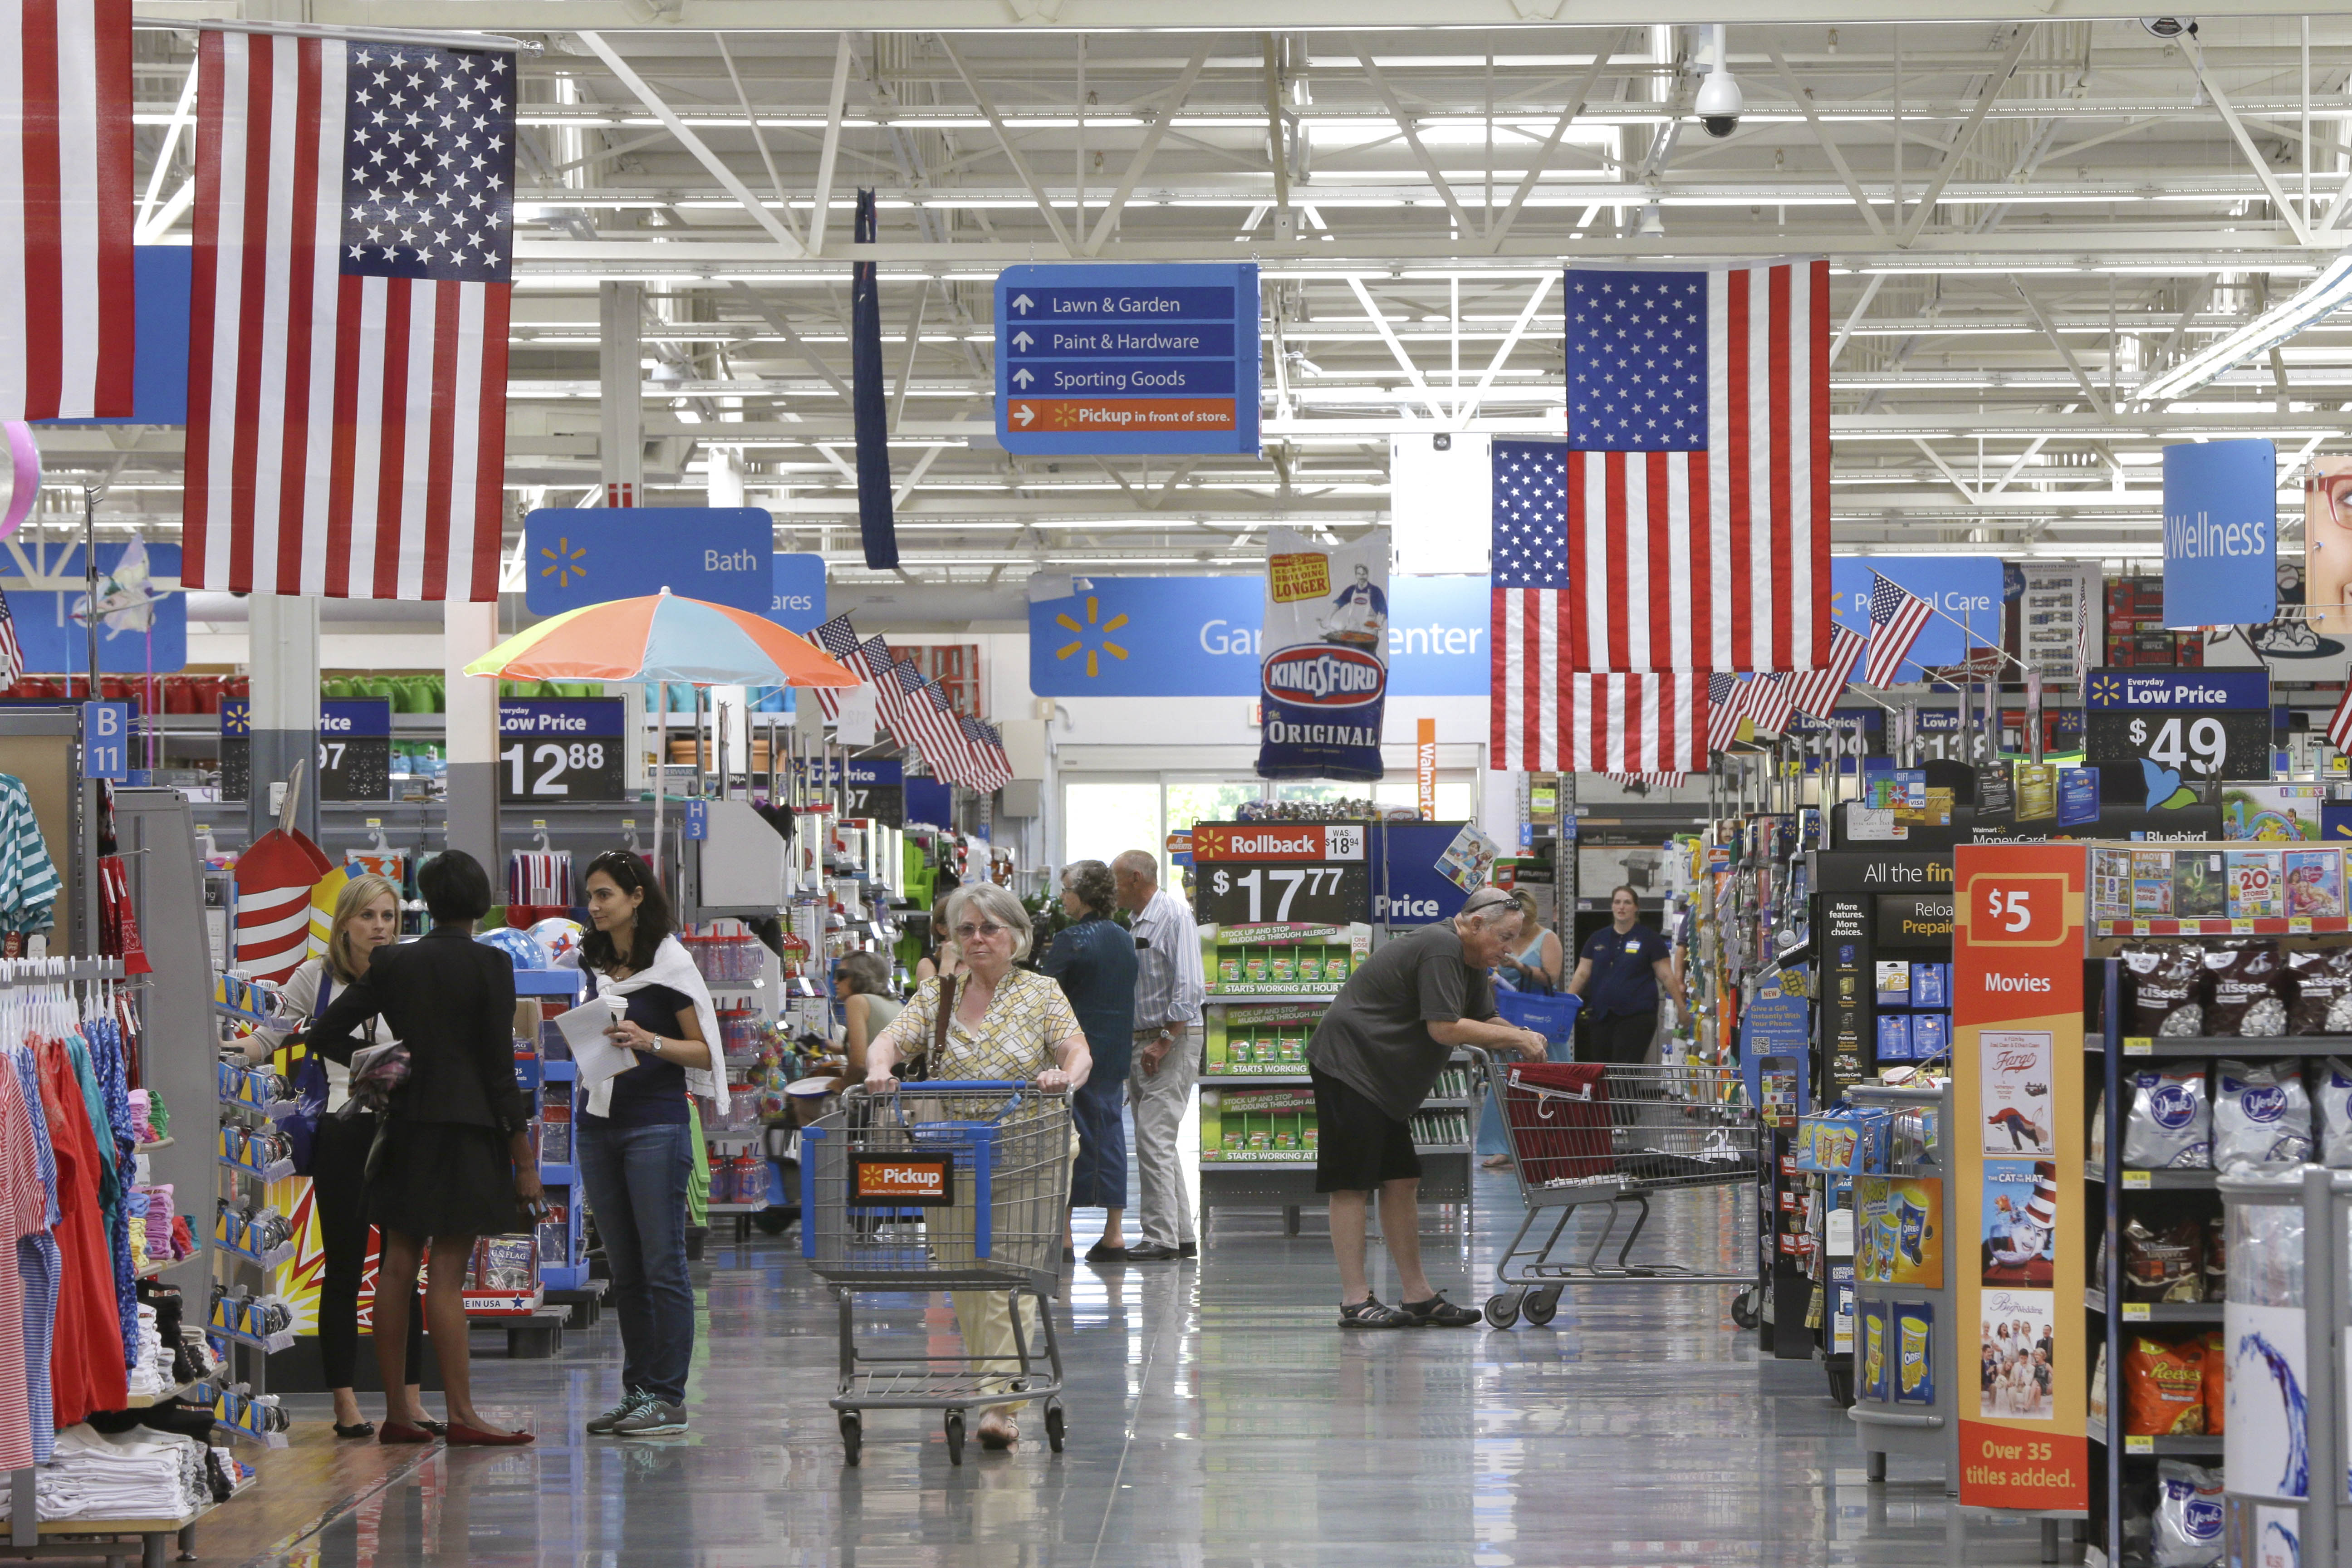 Customers shop on widened aisles at a Wal-Mart Supercenter store in Springdale, Ark., Thursday, June 4, 2015.